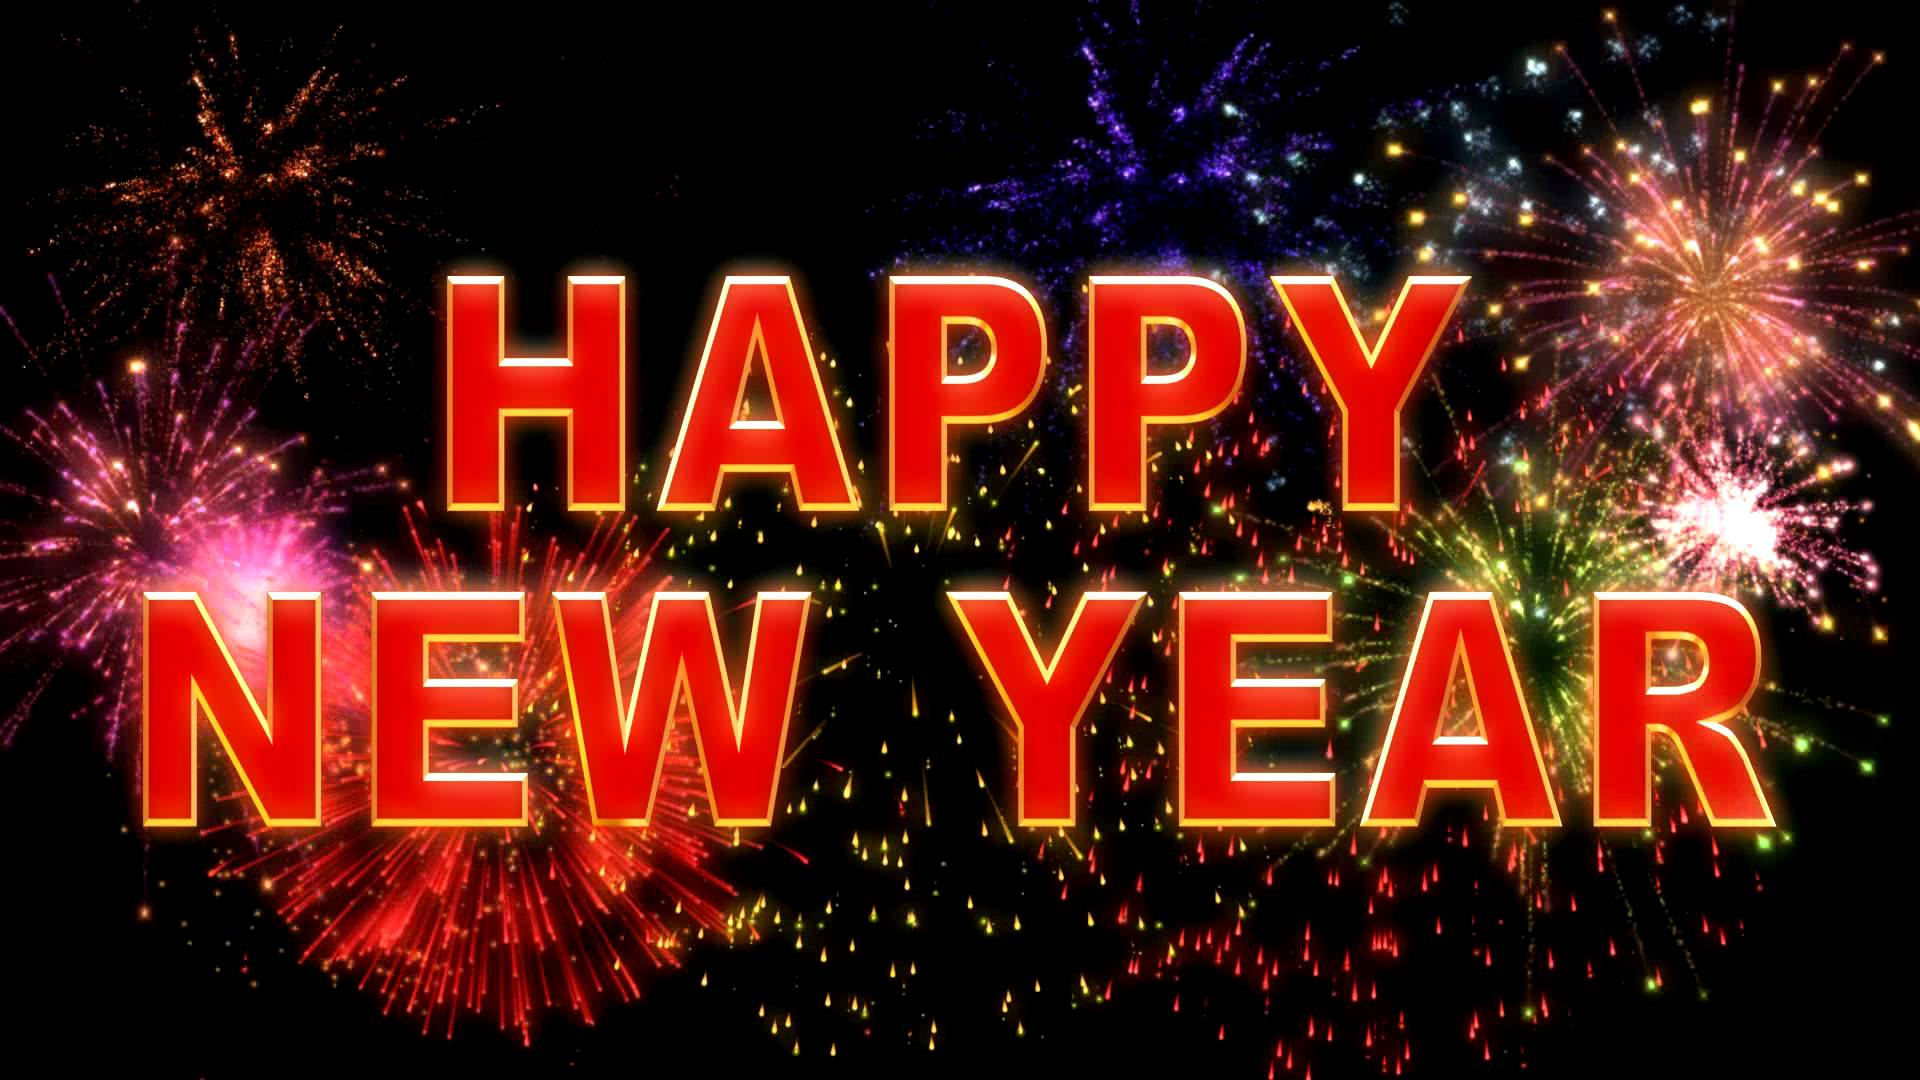 hd wallpaper happy new year wallpapers55com   Best Wallpapers for 1920x1080